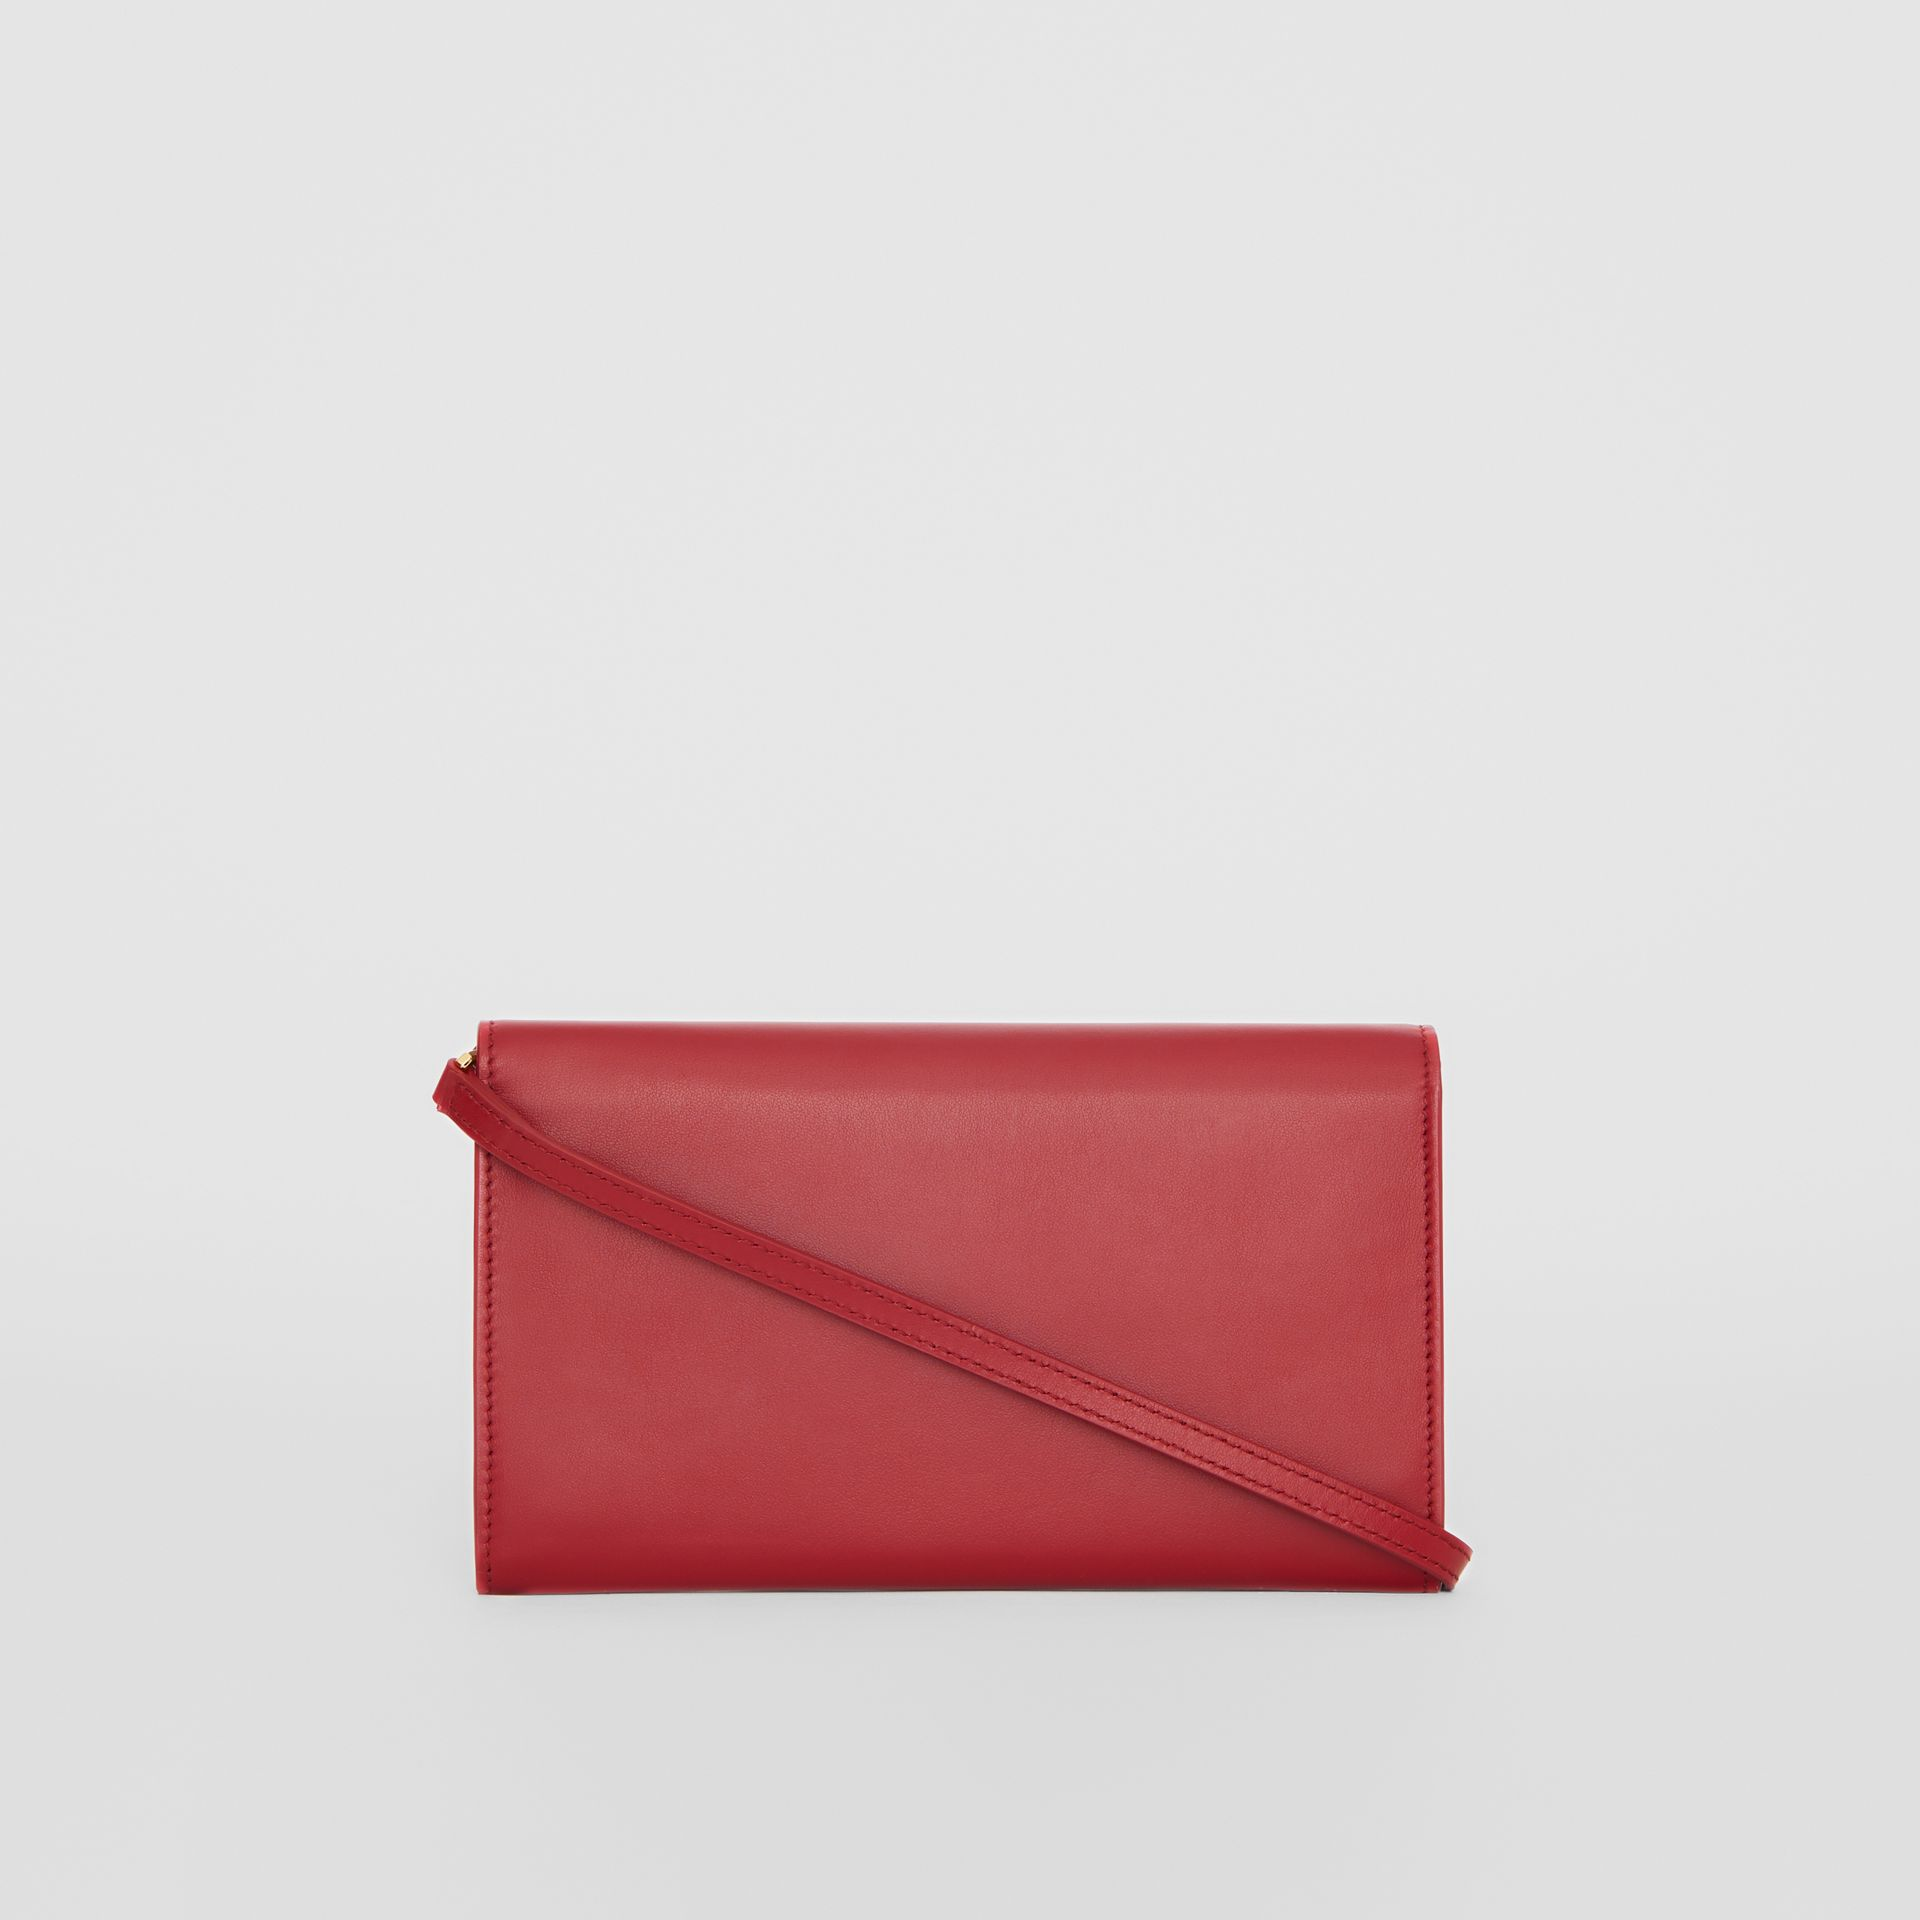 Monogram Motif Leather Wallet with Detachable Strap in Crimson - Women | Burberry United States - gallery image 7